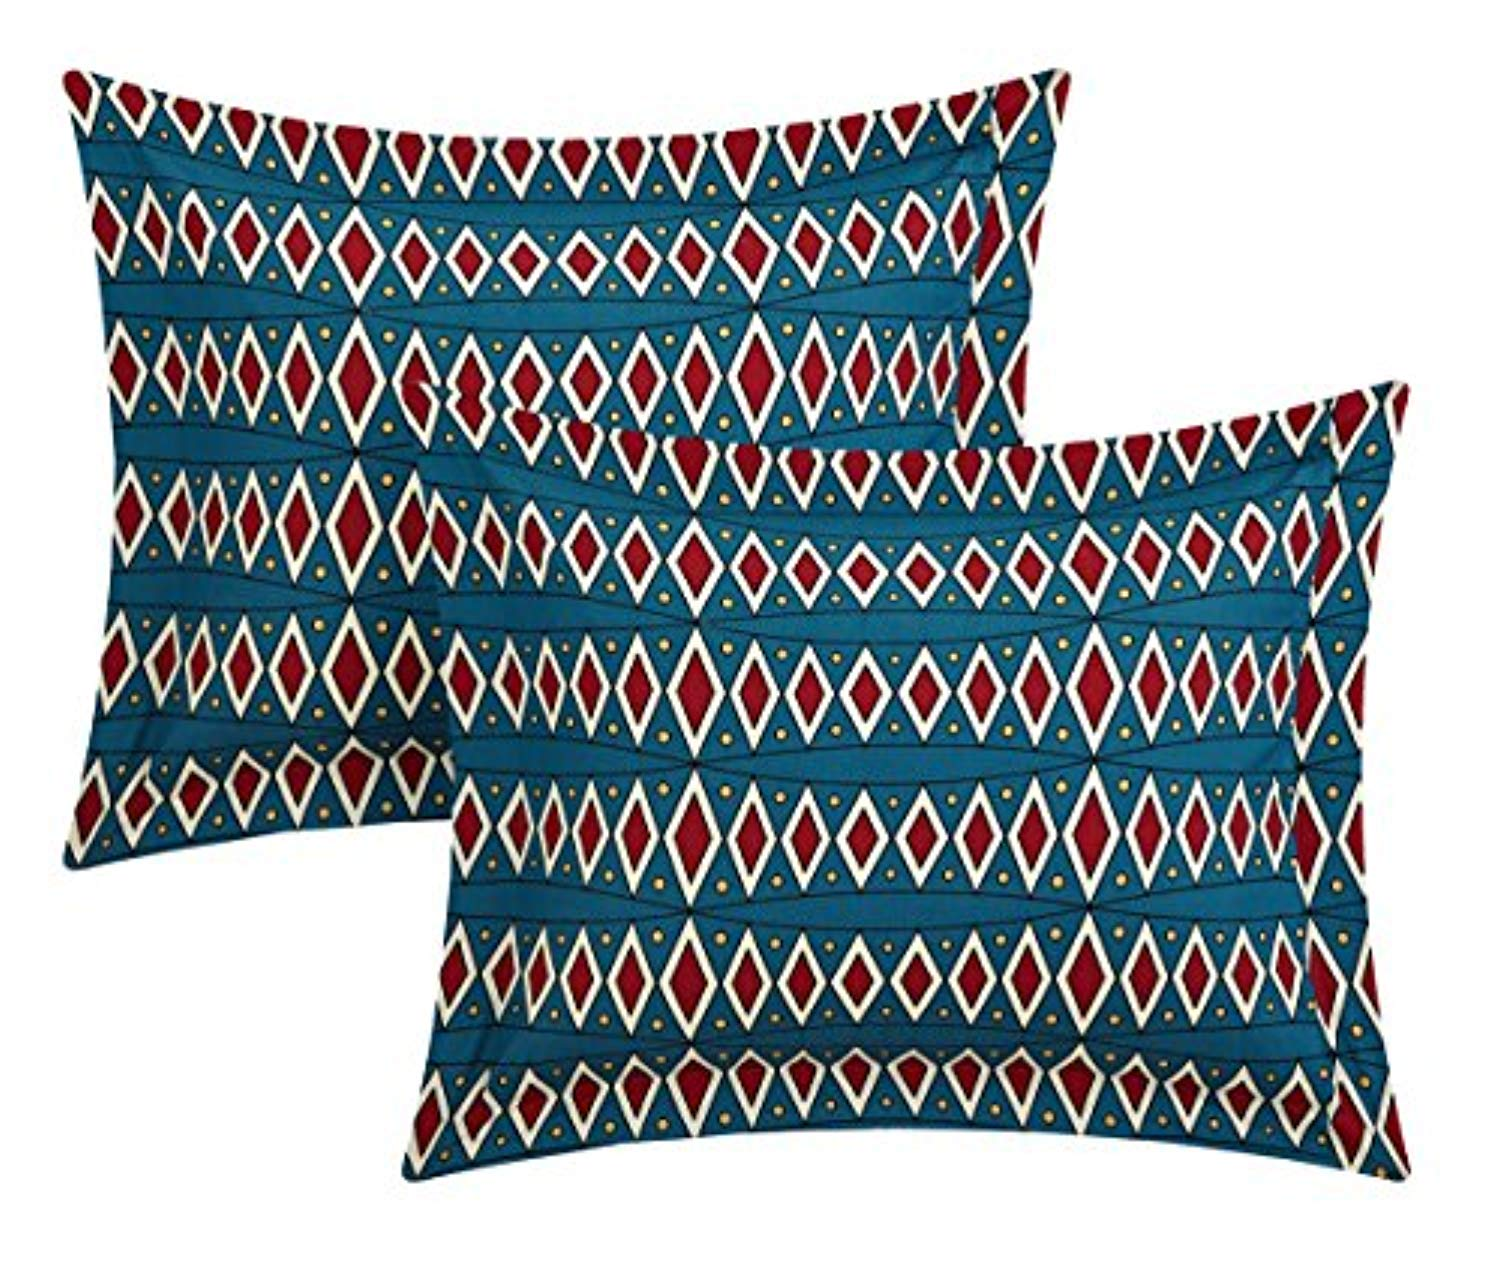 Chic Home 4 Piece Zaiden REVERSIBLE Large Scale global tribal african inspired printed King Duvet Set Red - Ufumbuzi - Home